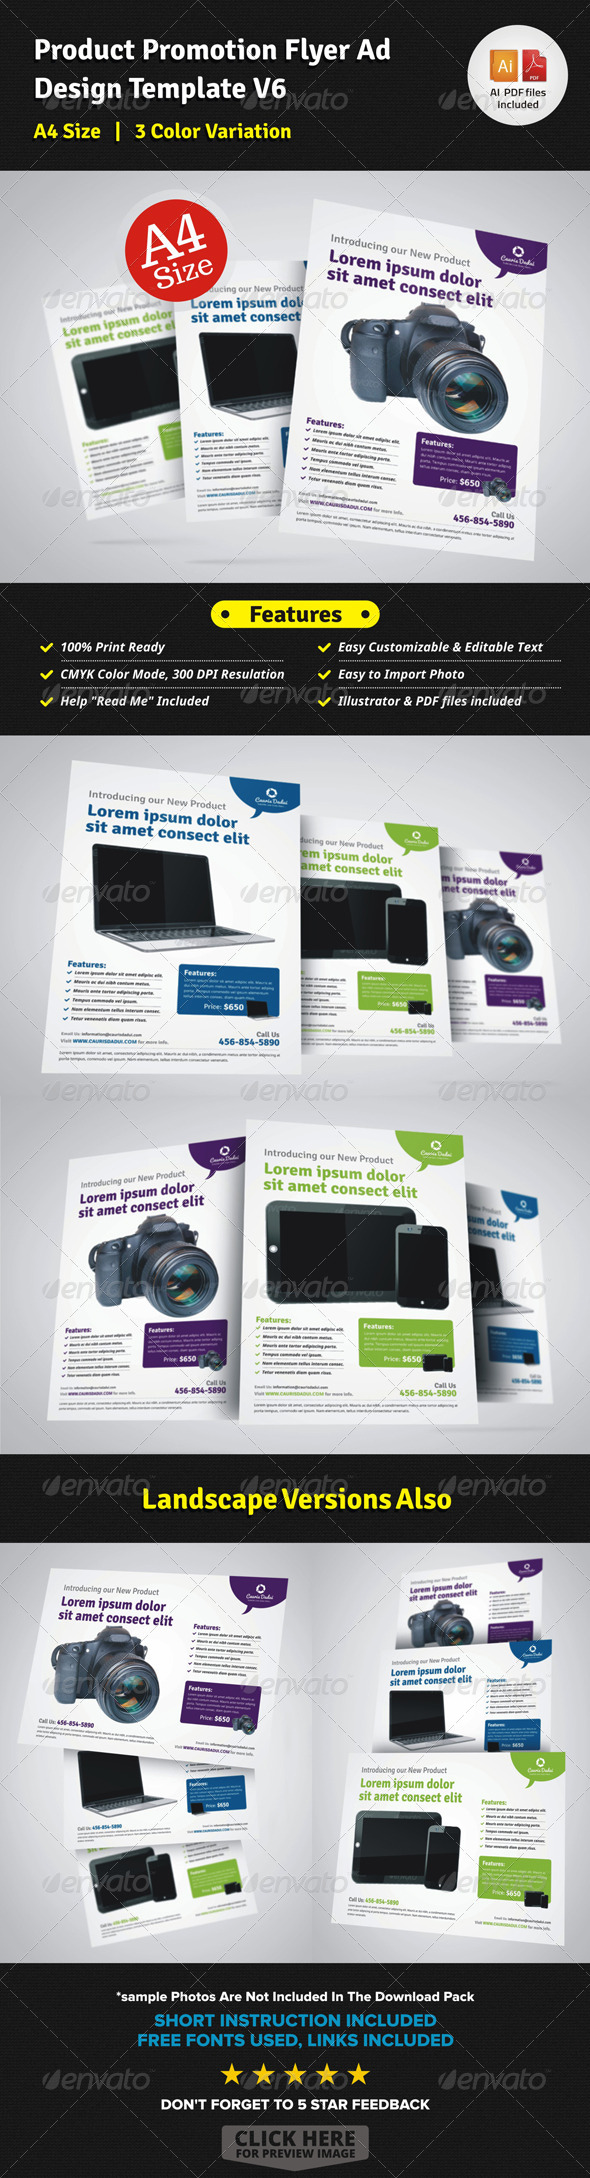 GraphicRiver Product Promotion Flyer Ad Design V6 7328015